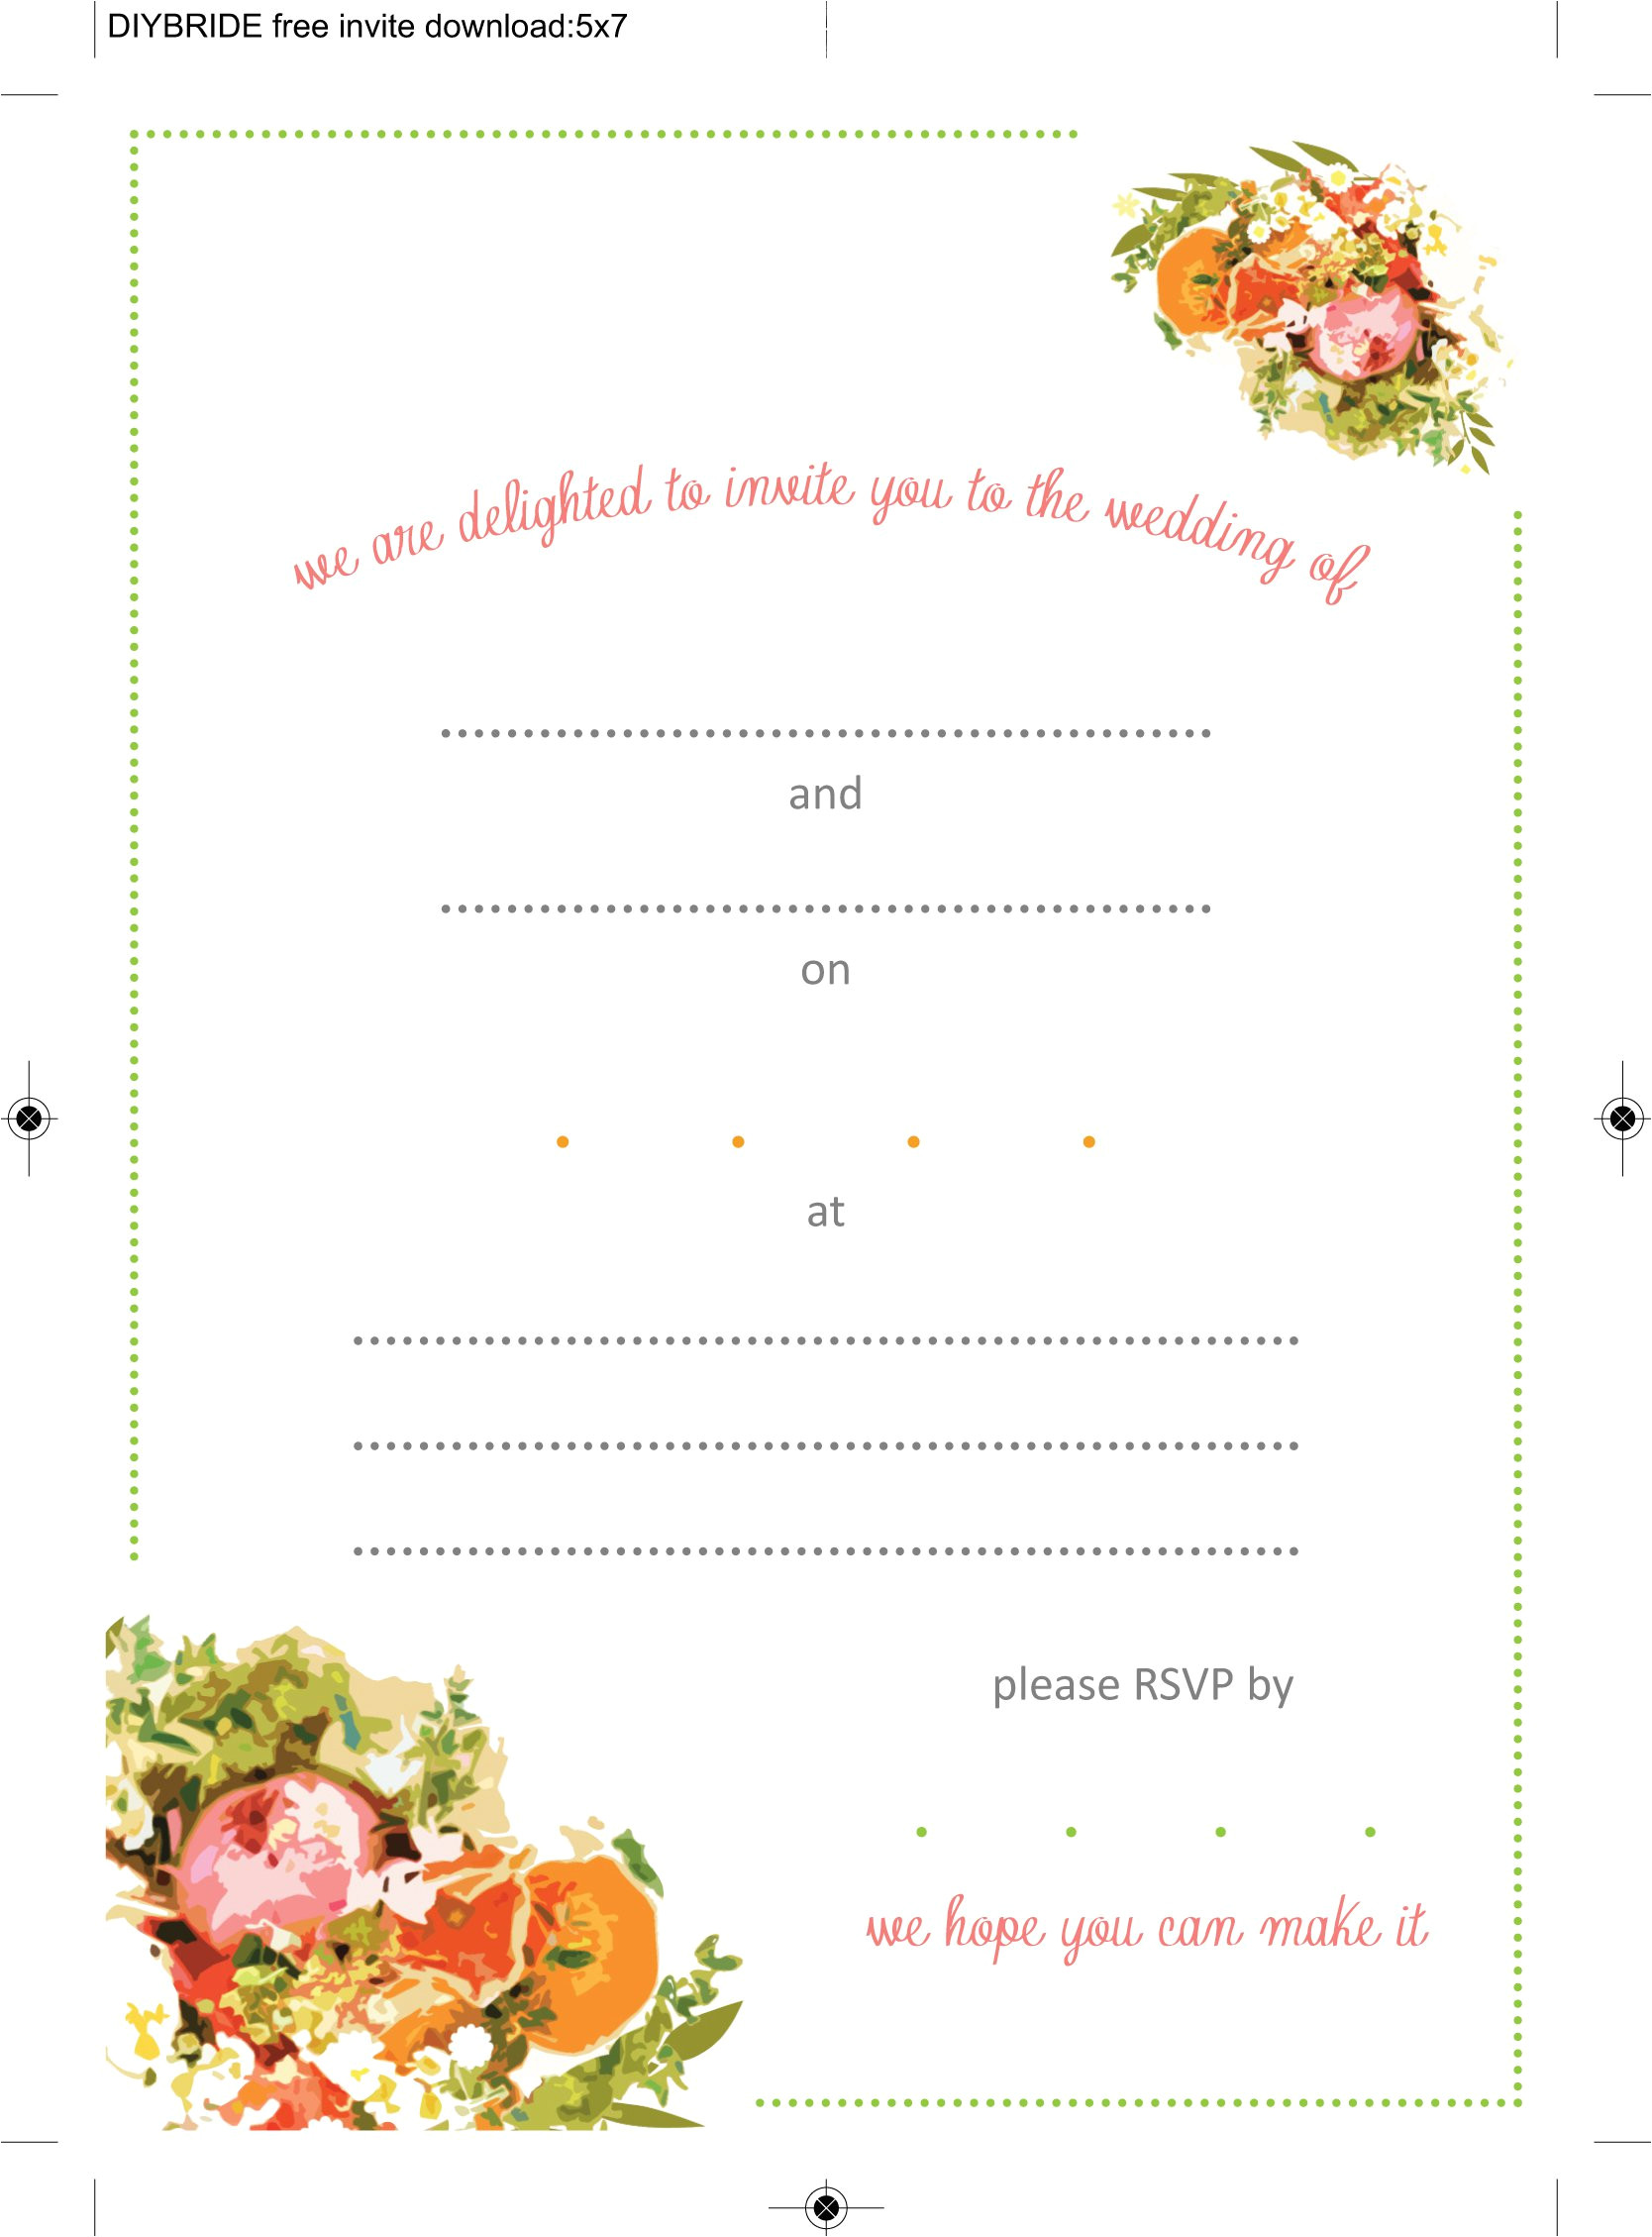 Invitiation Template Wedding Invitation Templates that are Cute and Easy to